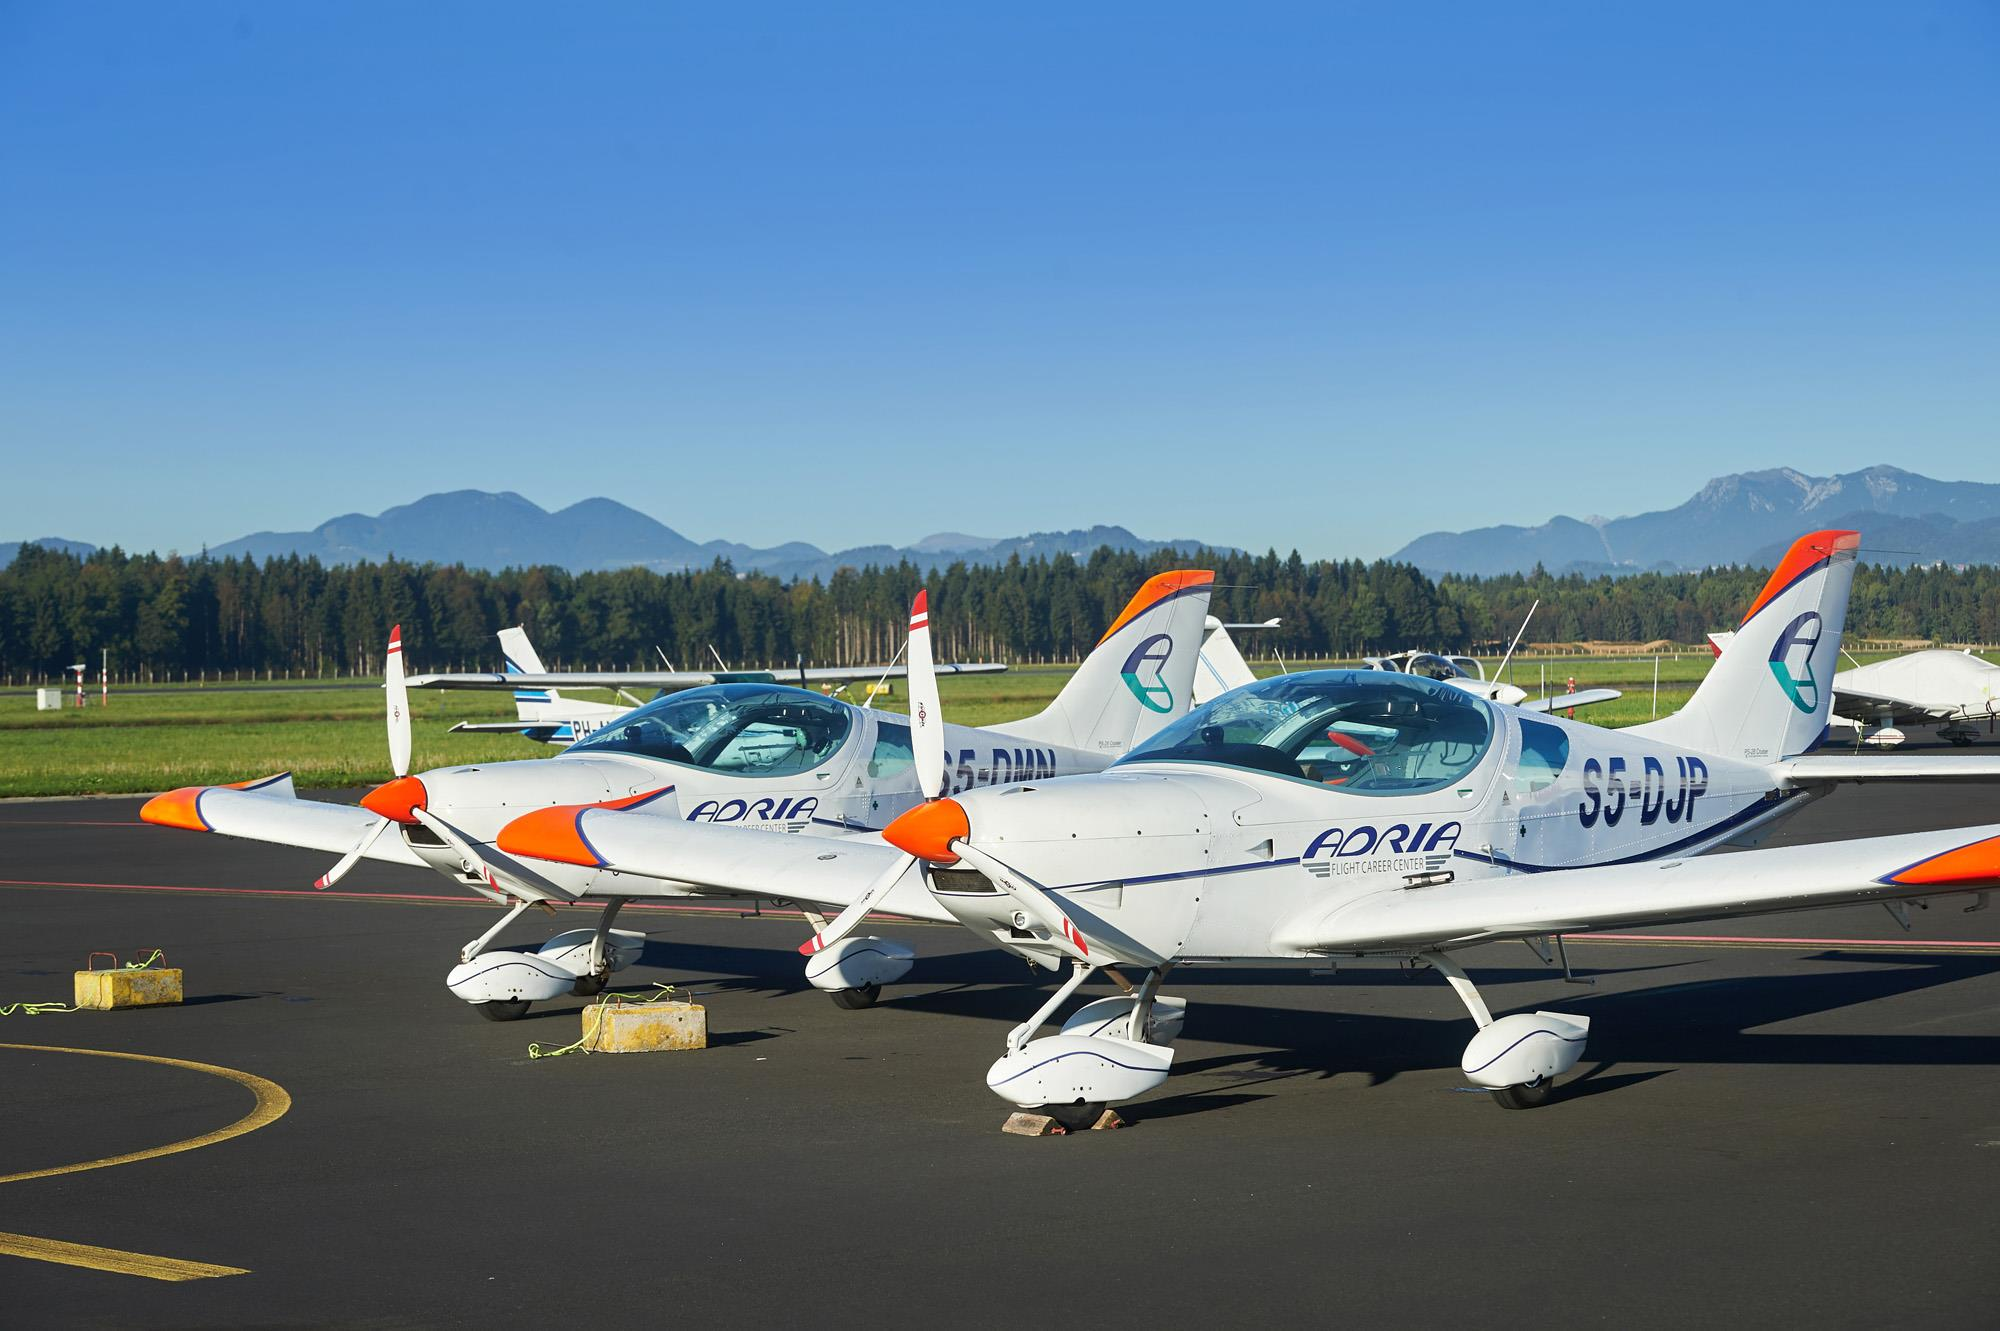 Adria Flight School